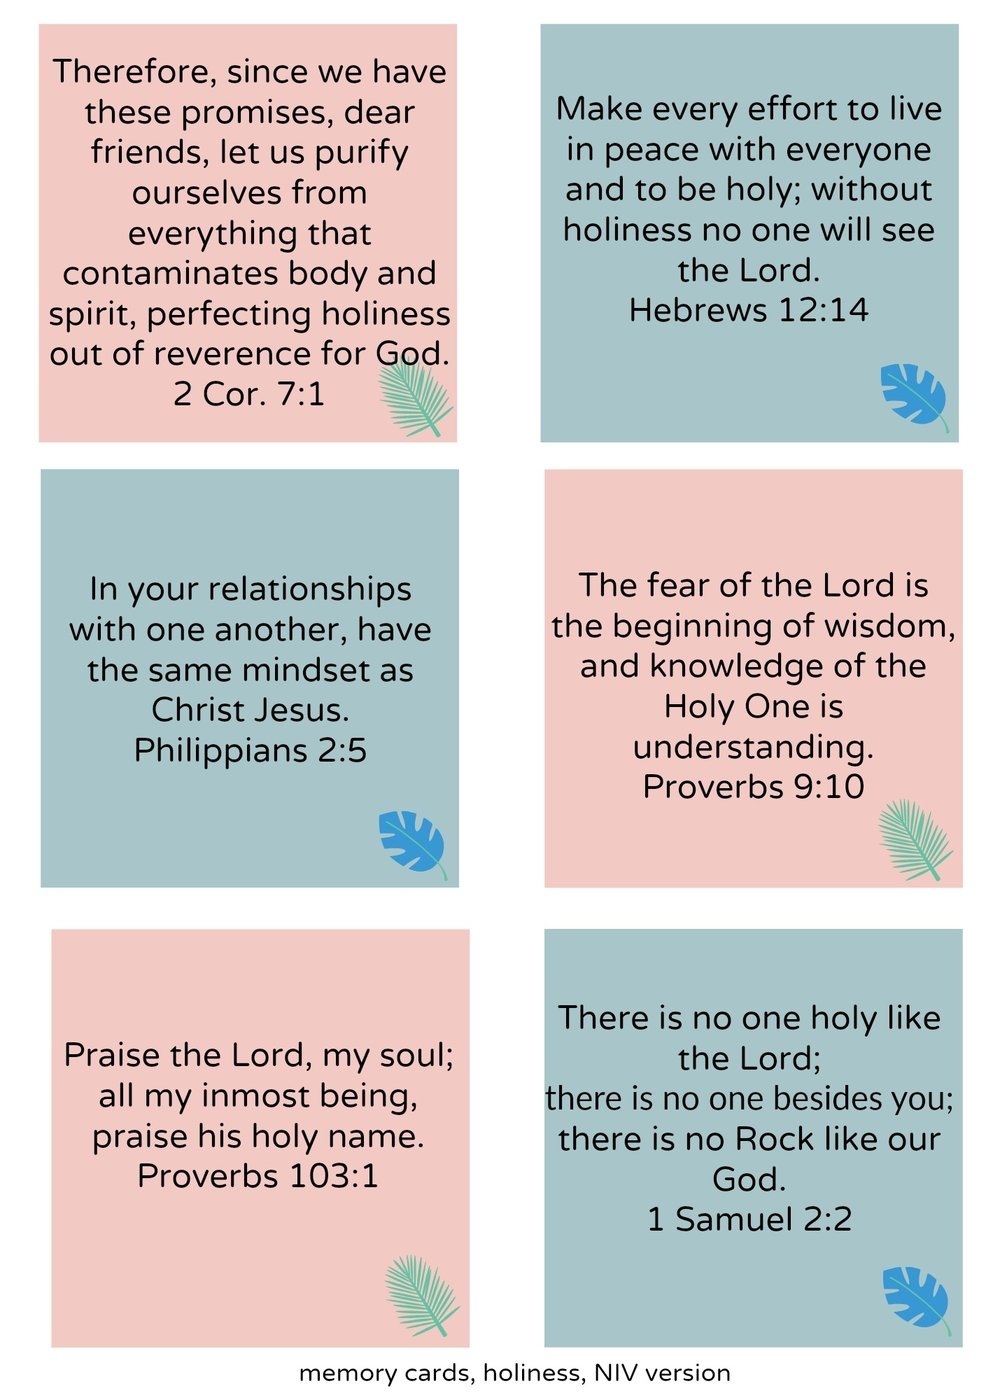 memory cards holiness I 8 habits of holiness to cultivate I Christian holiness I Christian habits I Devotion I prayer I women's retreat I Christian Women's retreat I Above the Waves II #holyhabits #holiness